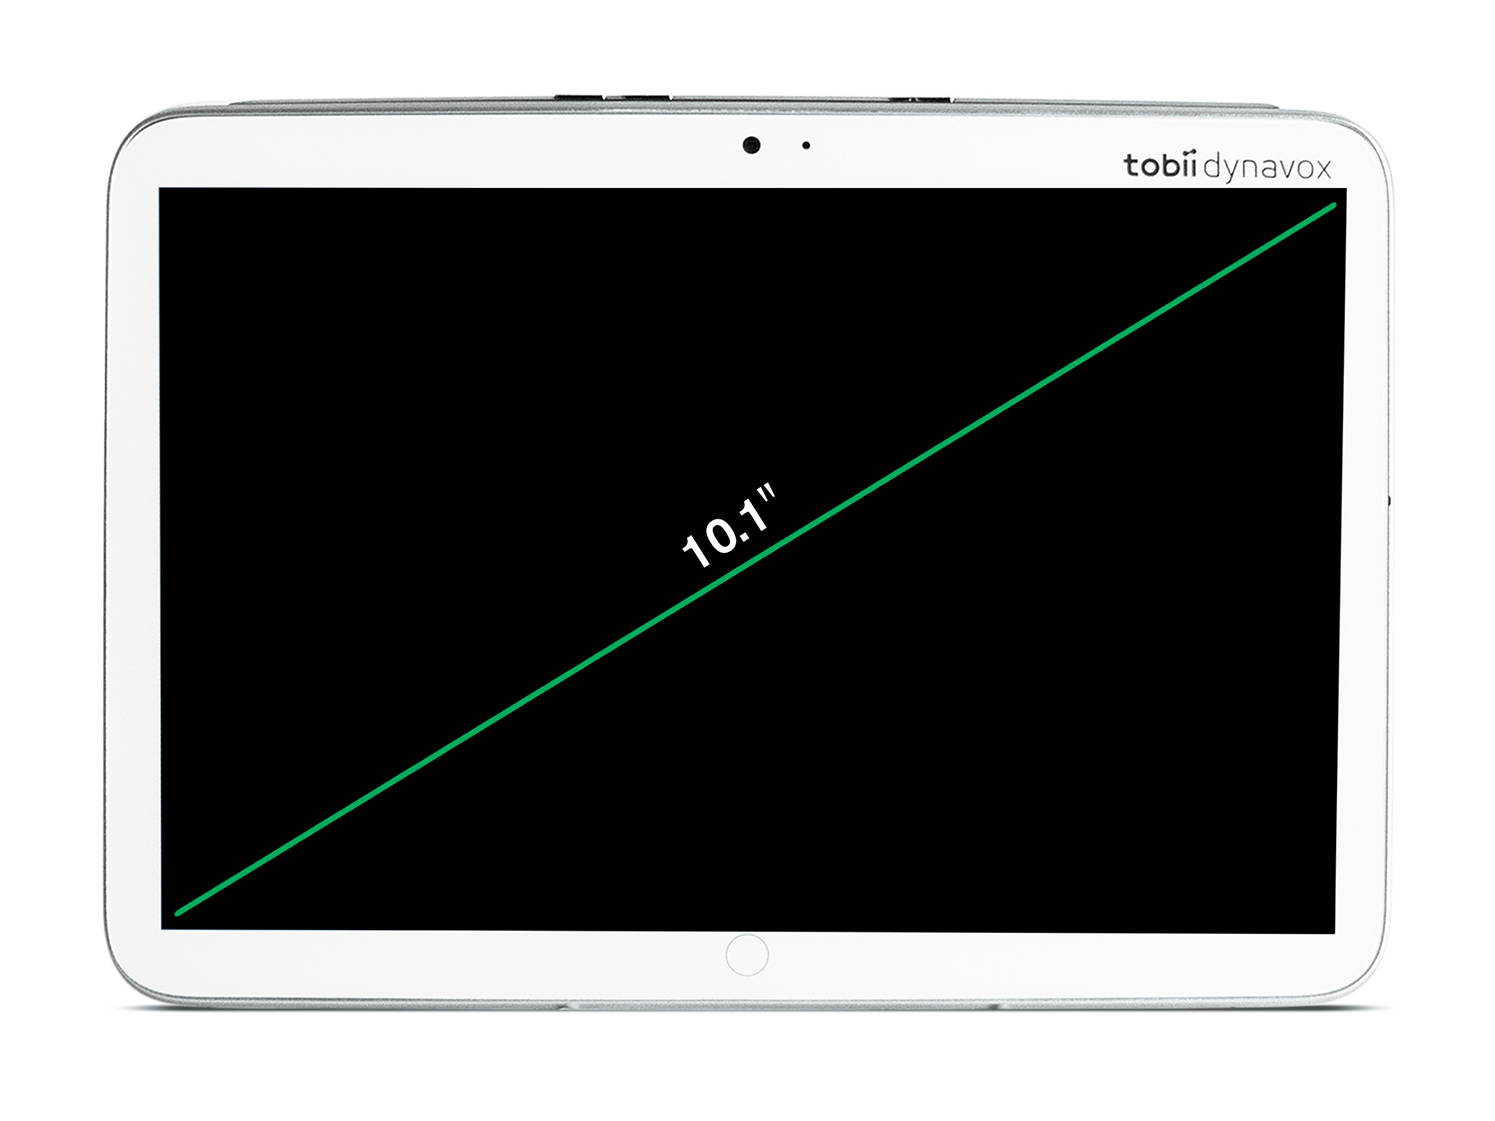 The Tobii Dynavox Indi has a 10.1 inch display